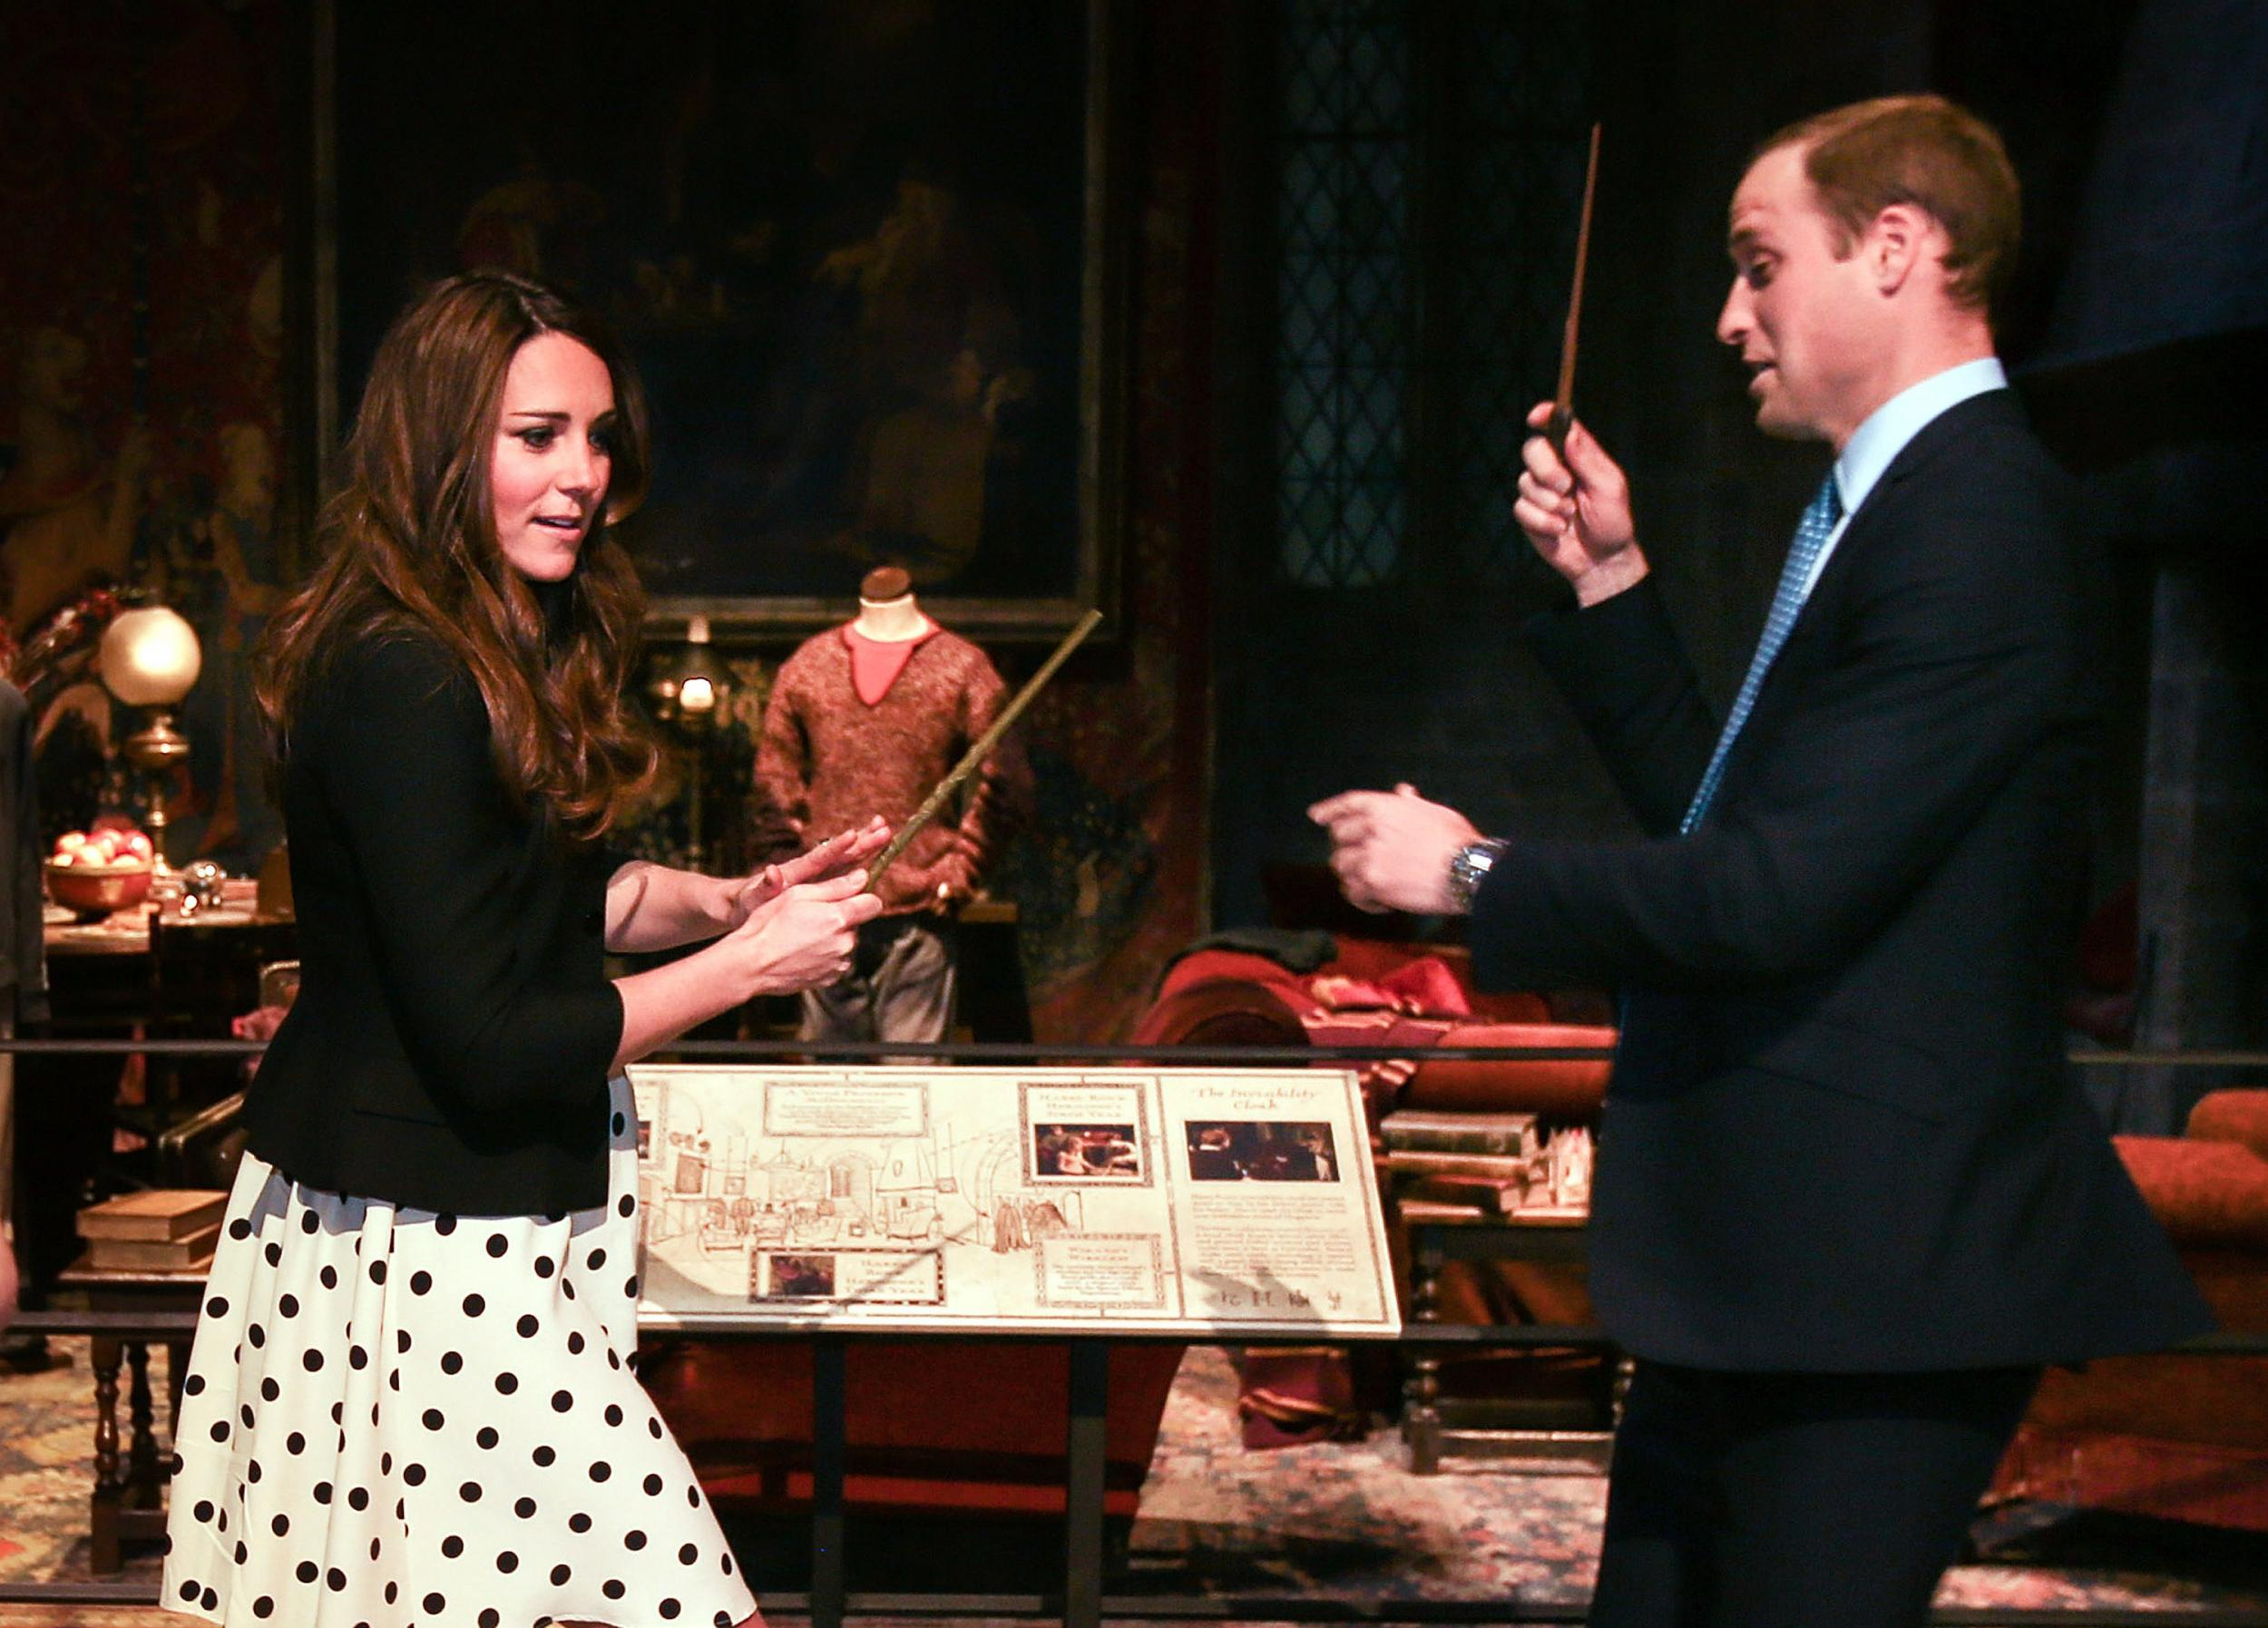 Royal baby name's unexpected Harry Potter link goes viral | The